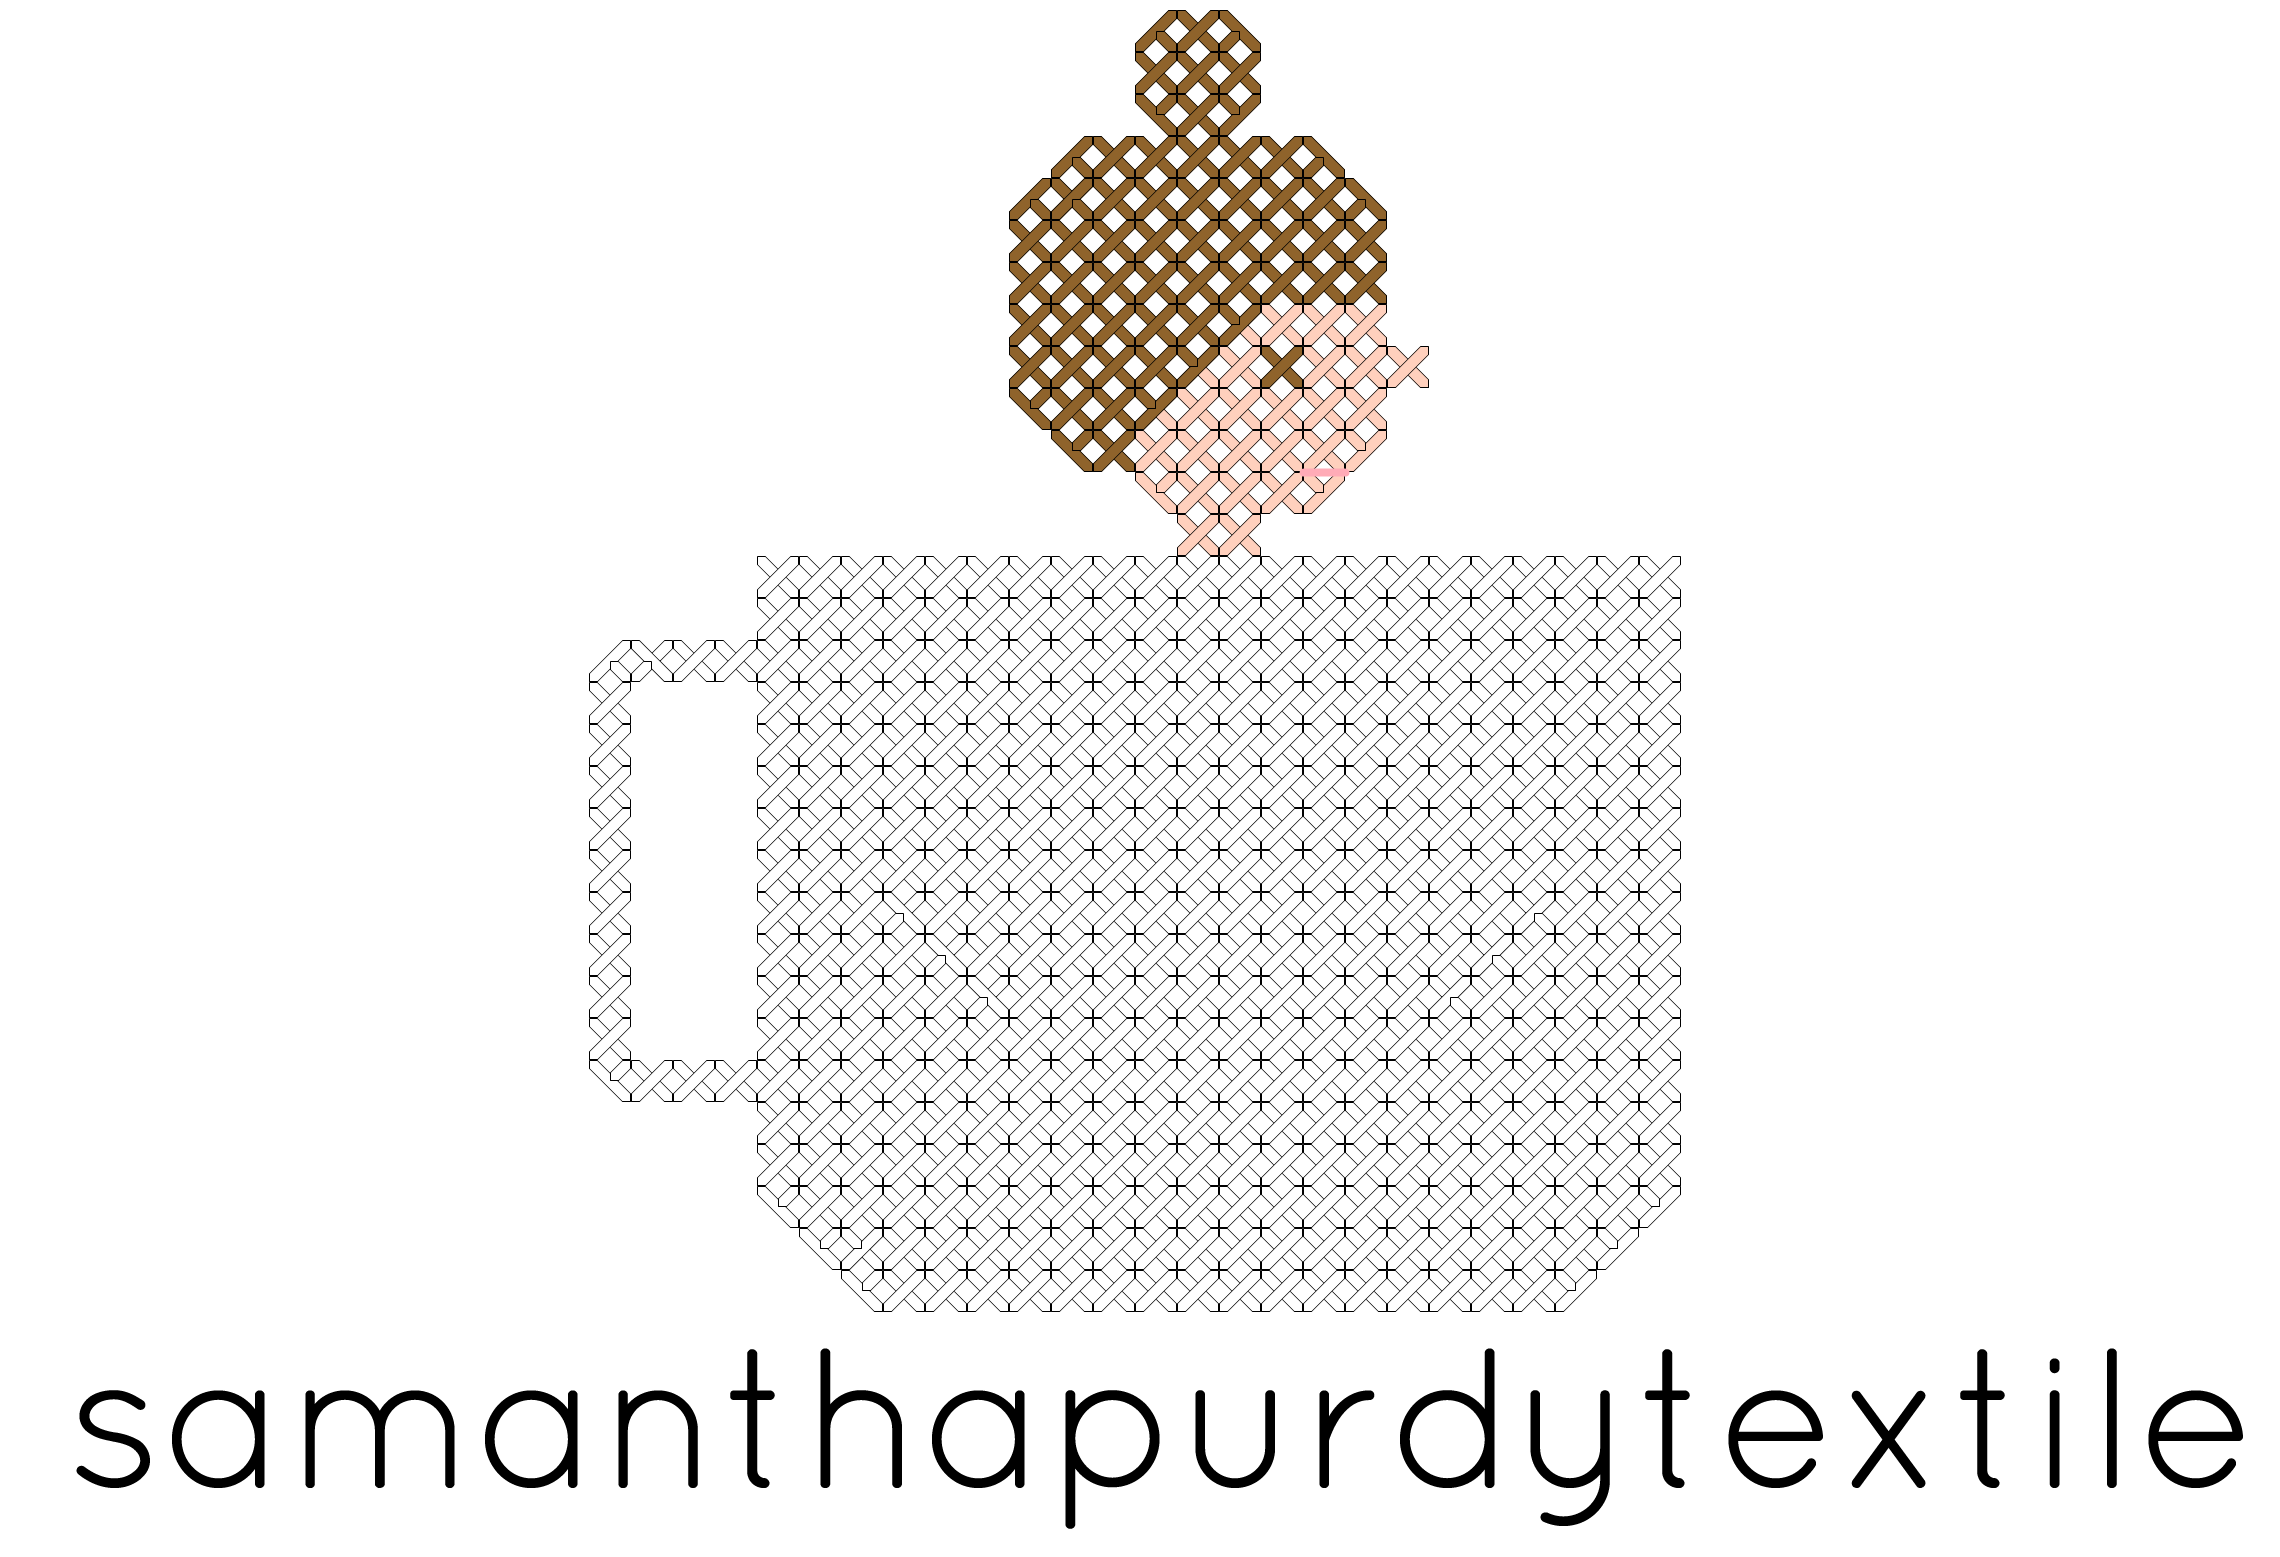 Samanthapurdytextile, cross stitch patterns by Samantha Purdy